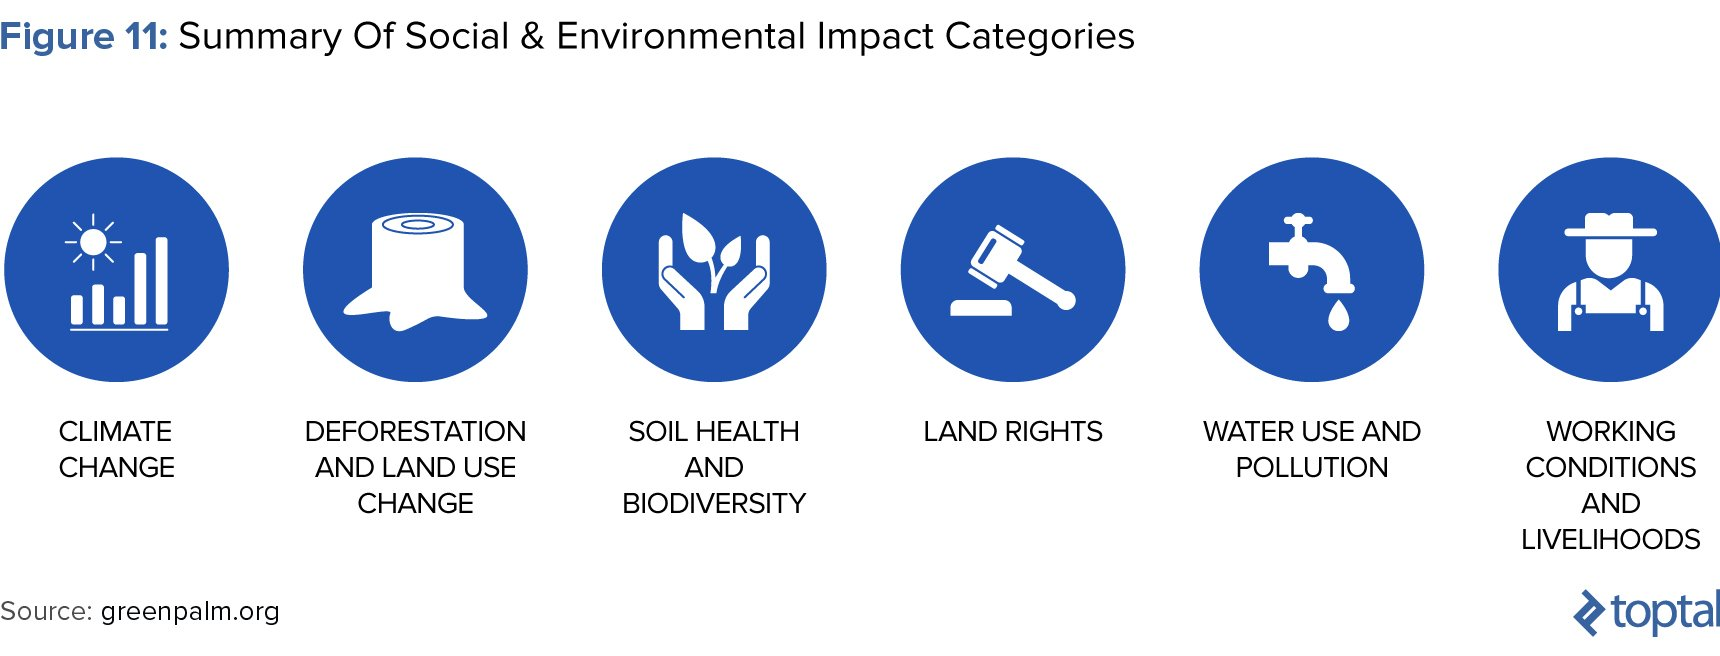 Figure 11: Summary of Social and Environmental Impact Categories